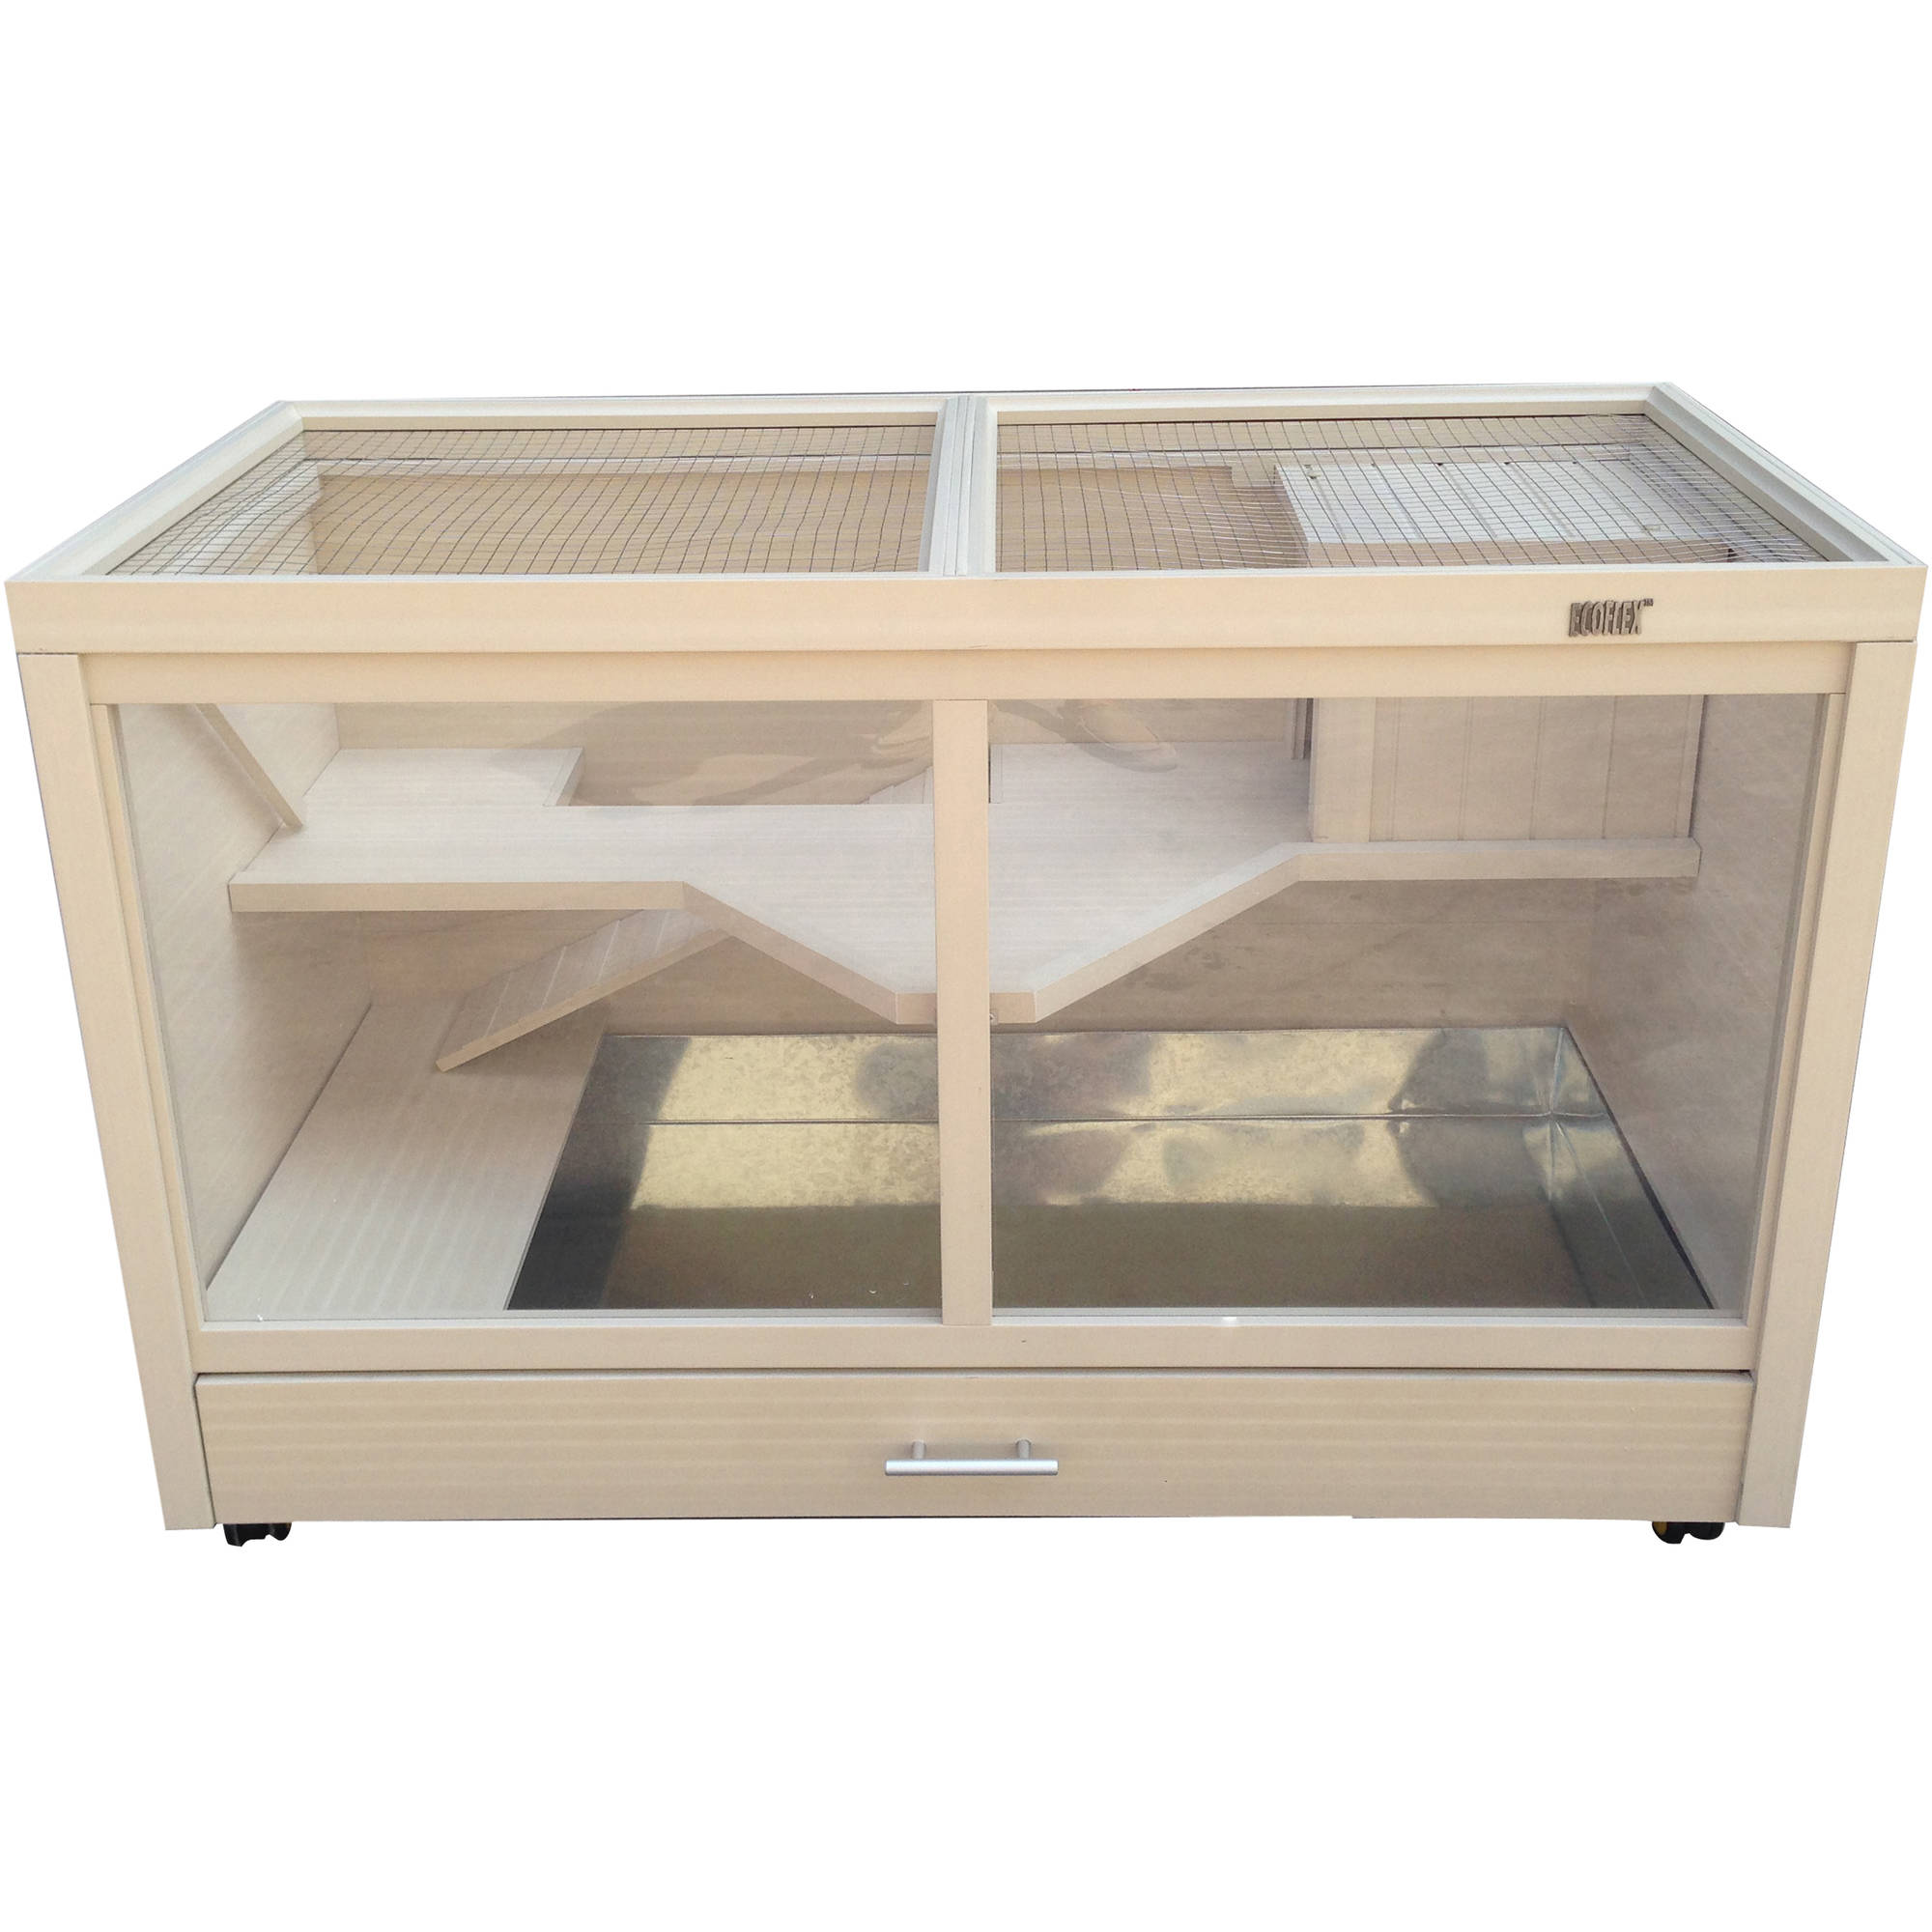 Pinta New Age Pet ecoFLEX Park Avenue Indoor Rabbit Hutch